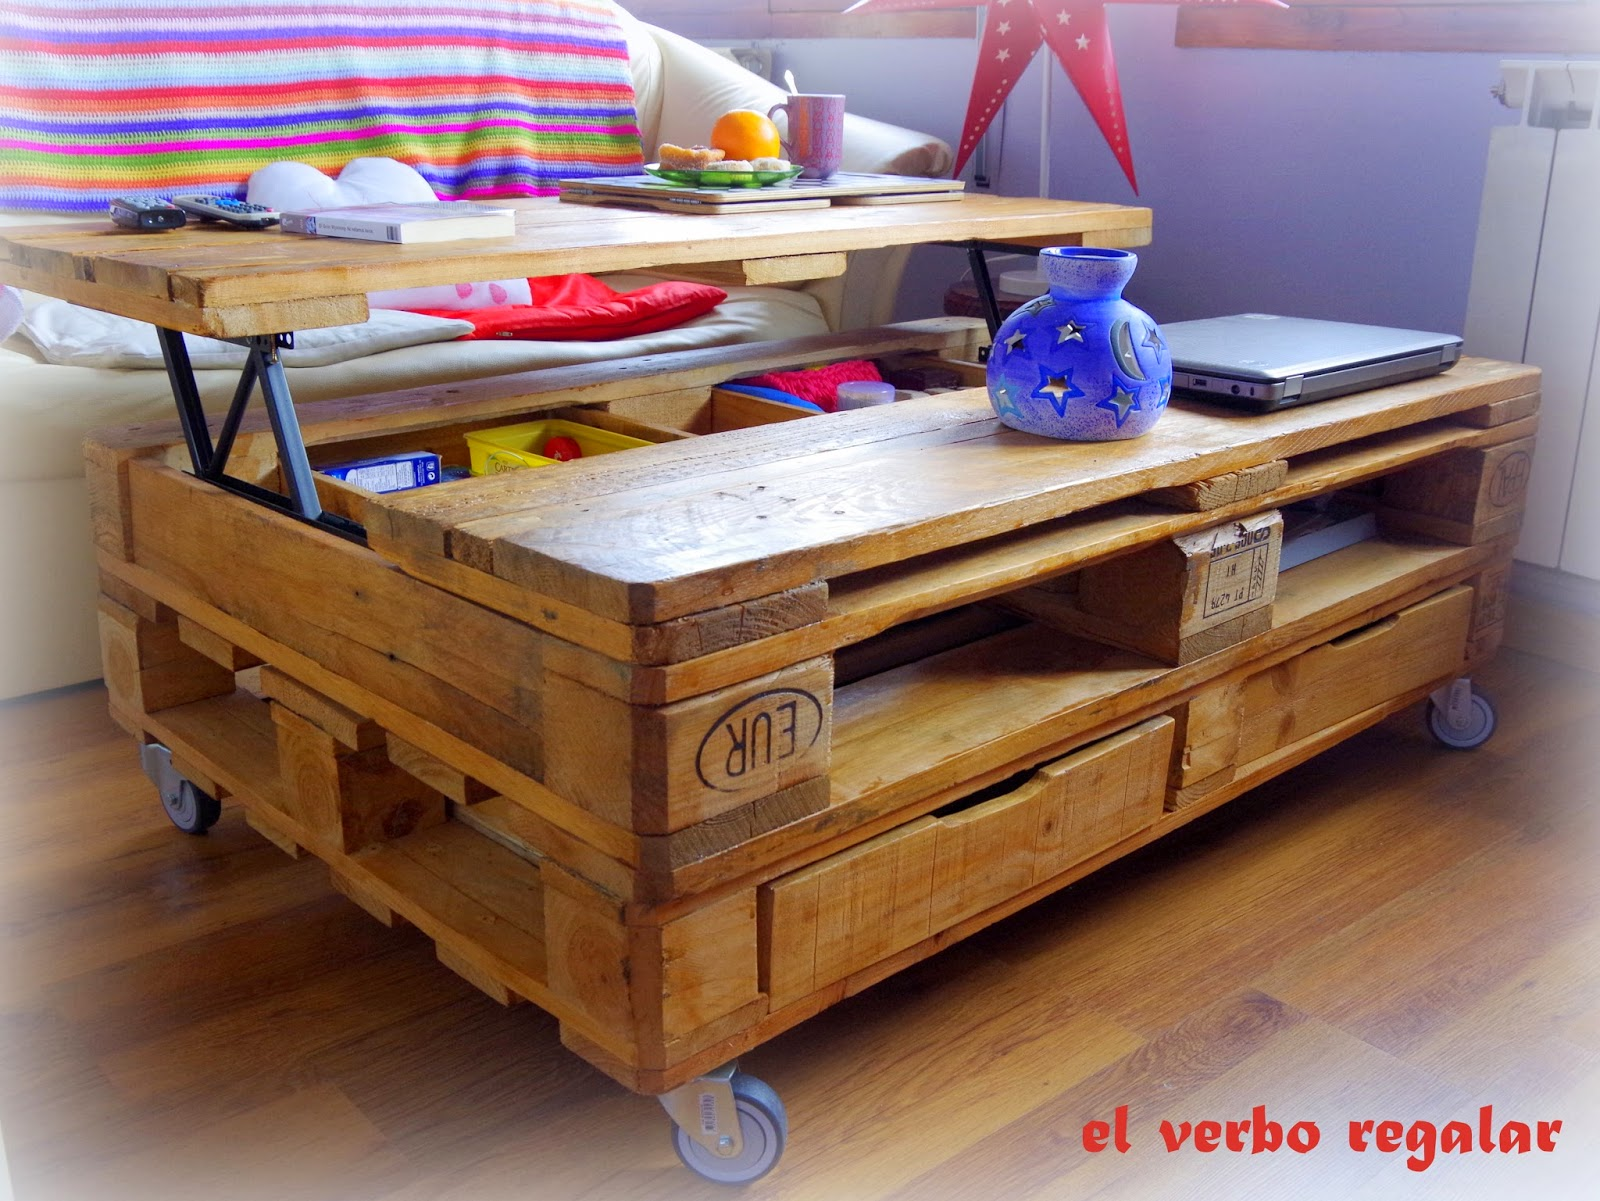 El verbo regalar mesa elevable con palets ideas diy caseras for Palet jardin salon mesa